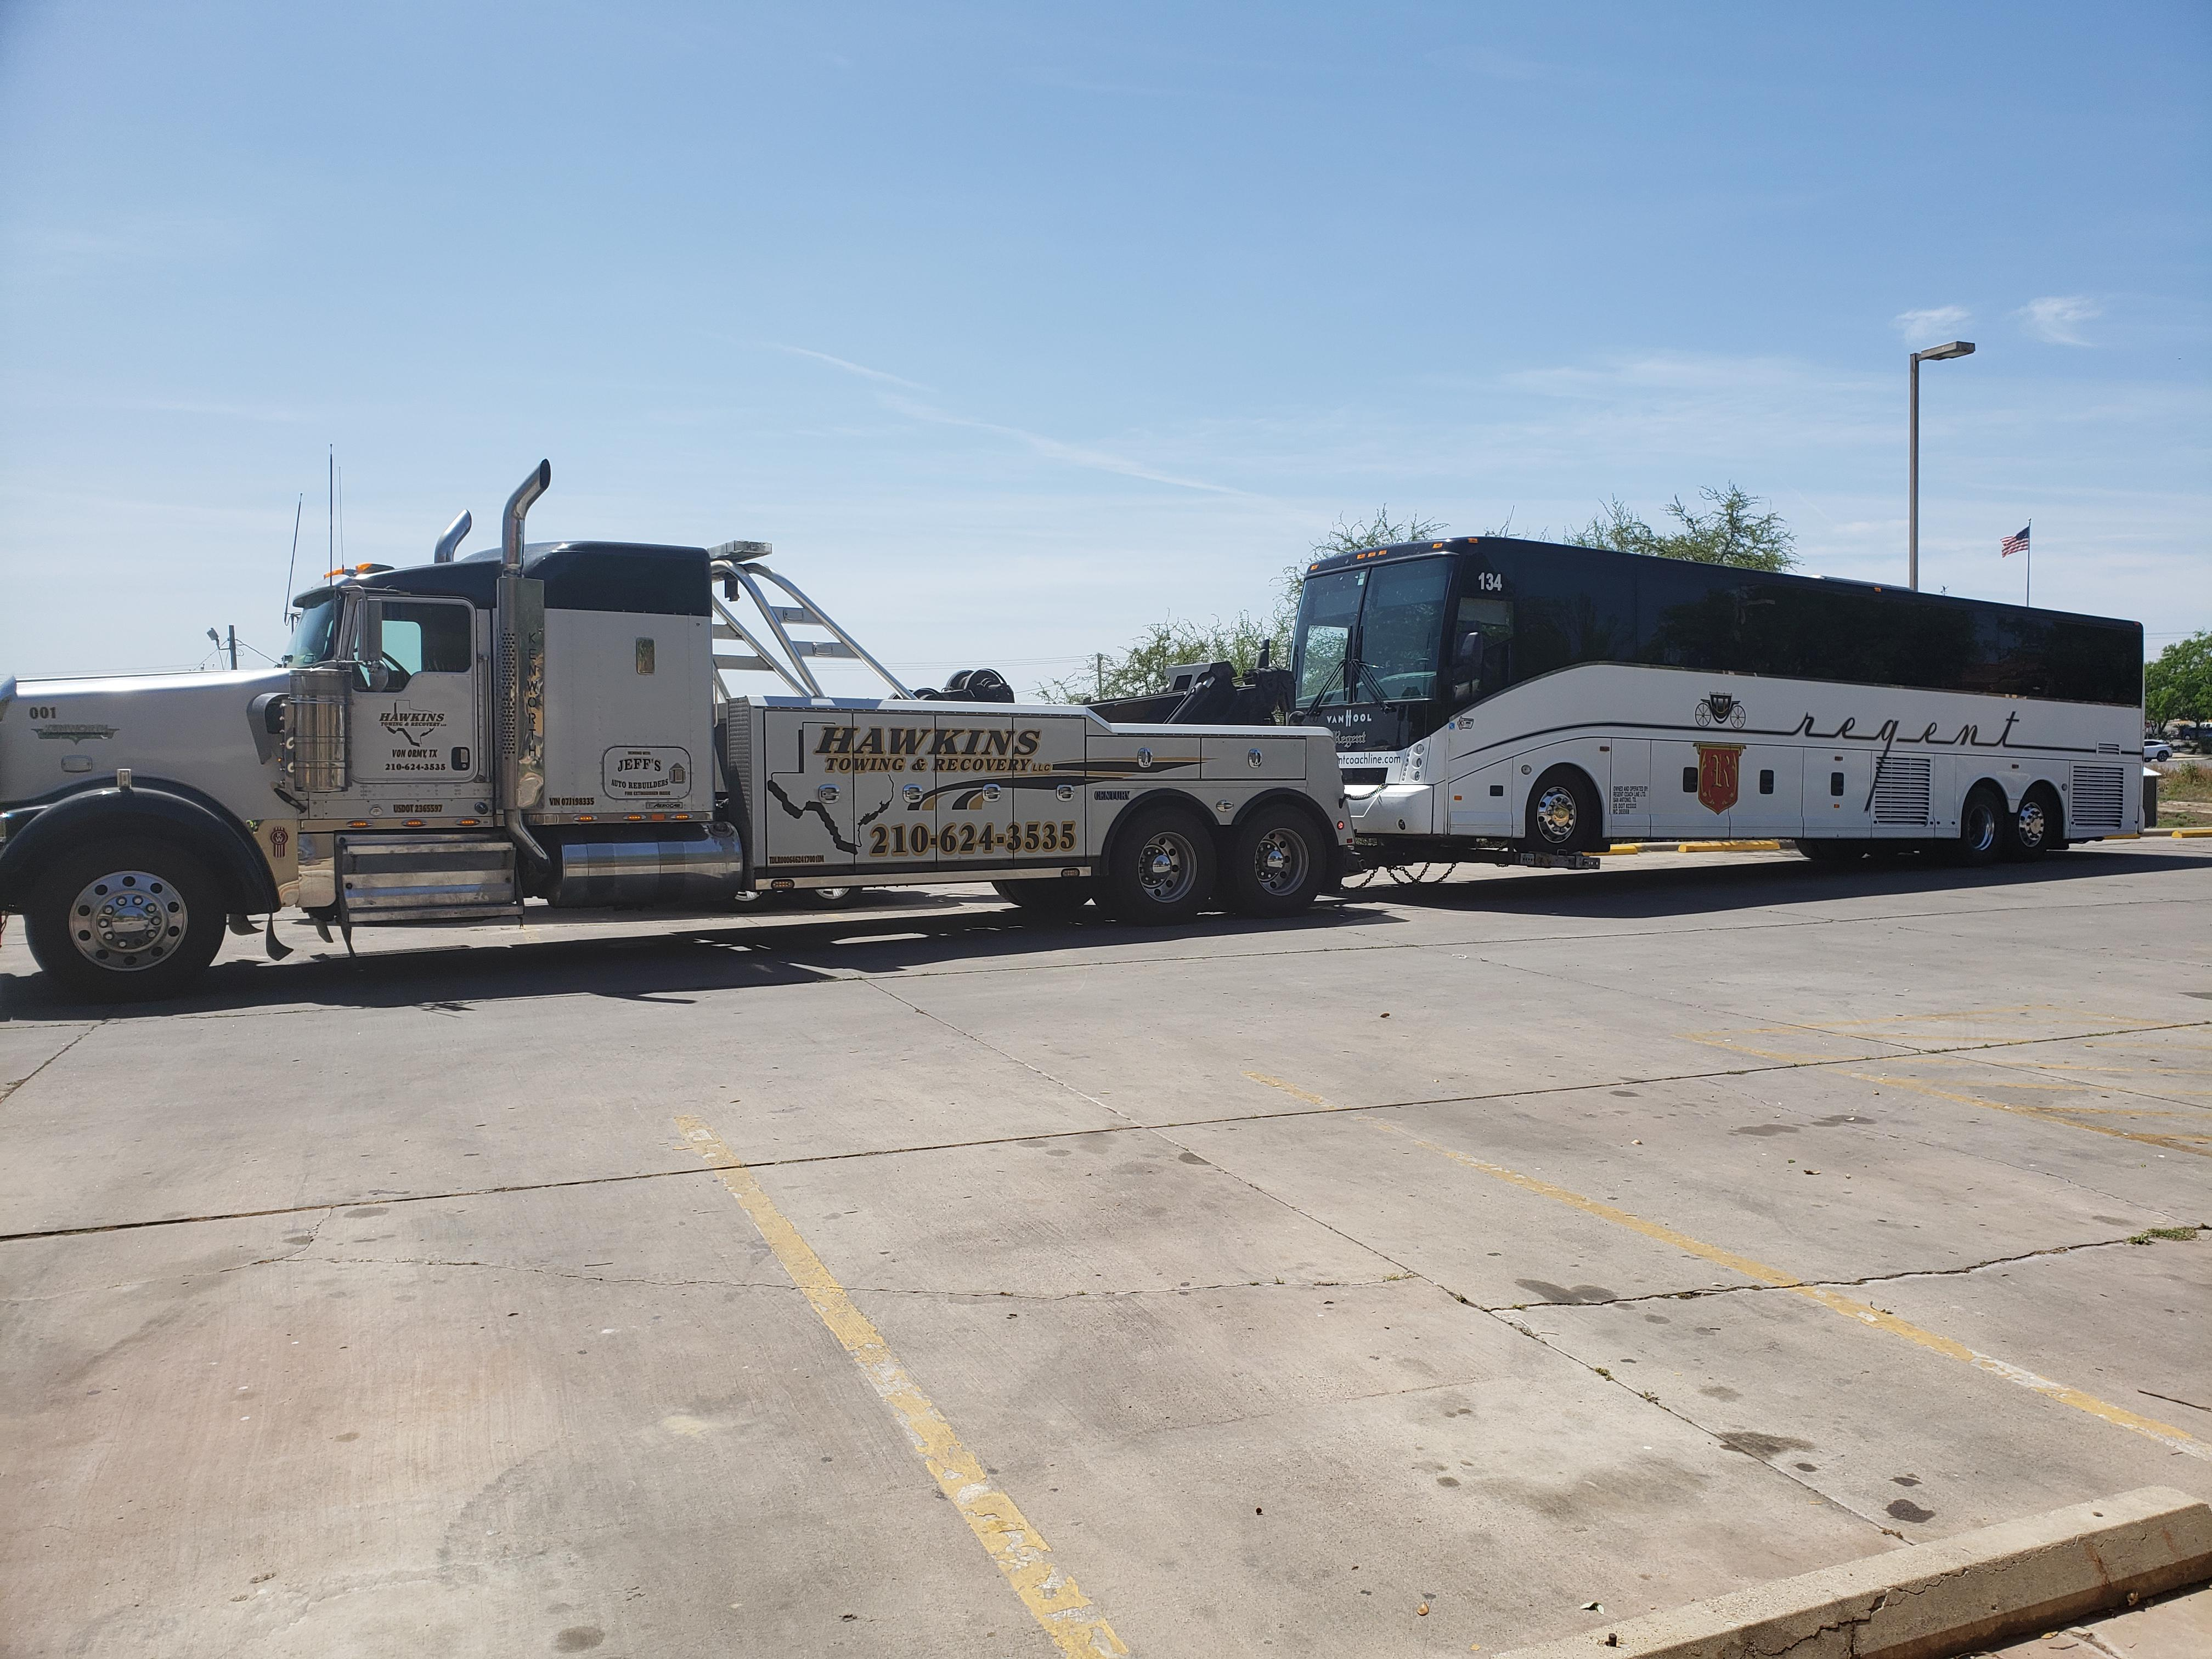 Hawkins Towing & Recovery image 12